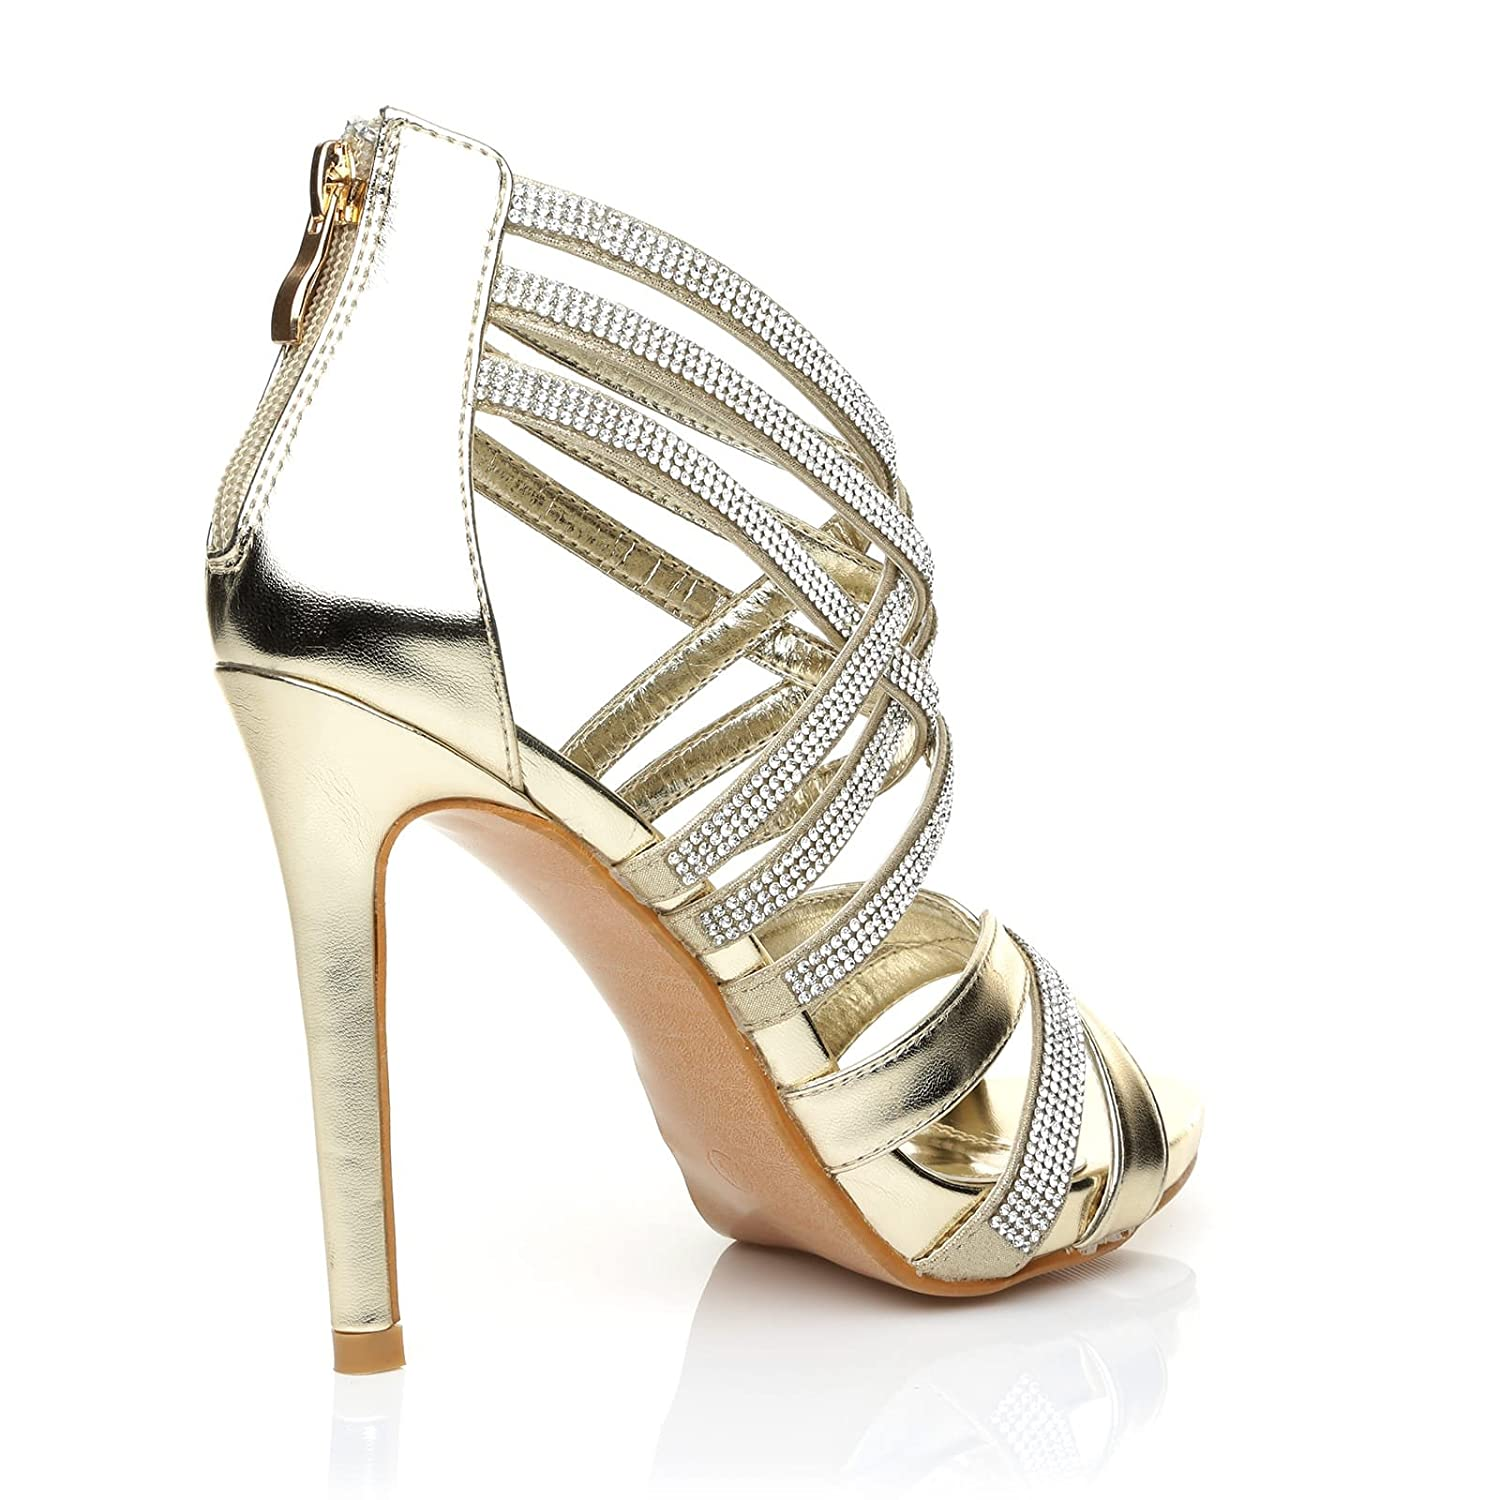 SONIA Champagne Gold Diamante Encrusted PU Leather High Heel Platform  Strappy Sandals: Amazon.co.uk: Shoes & Bags